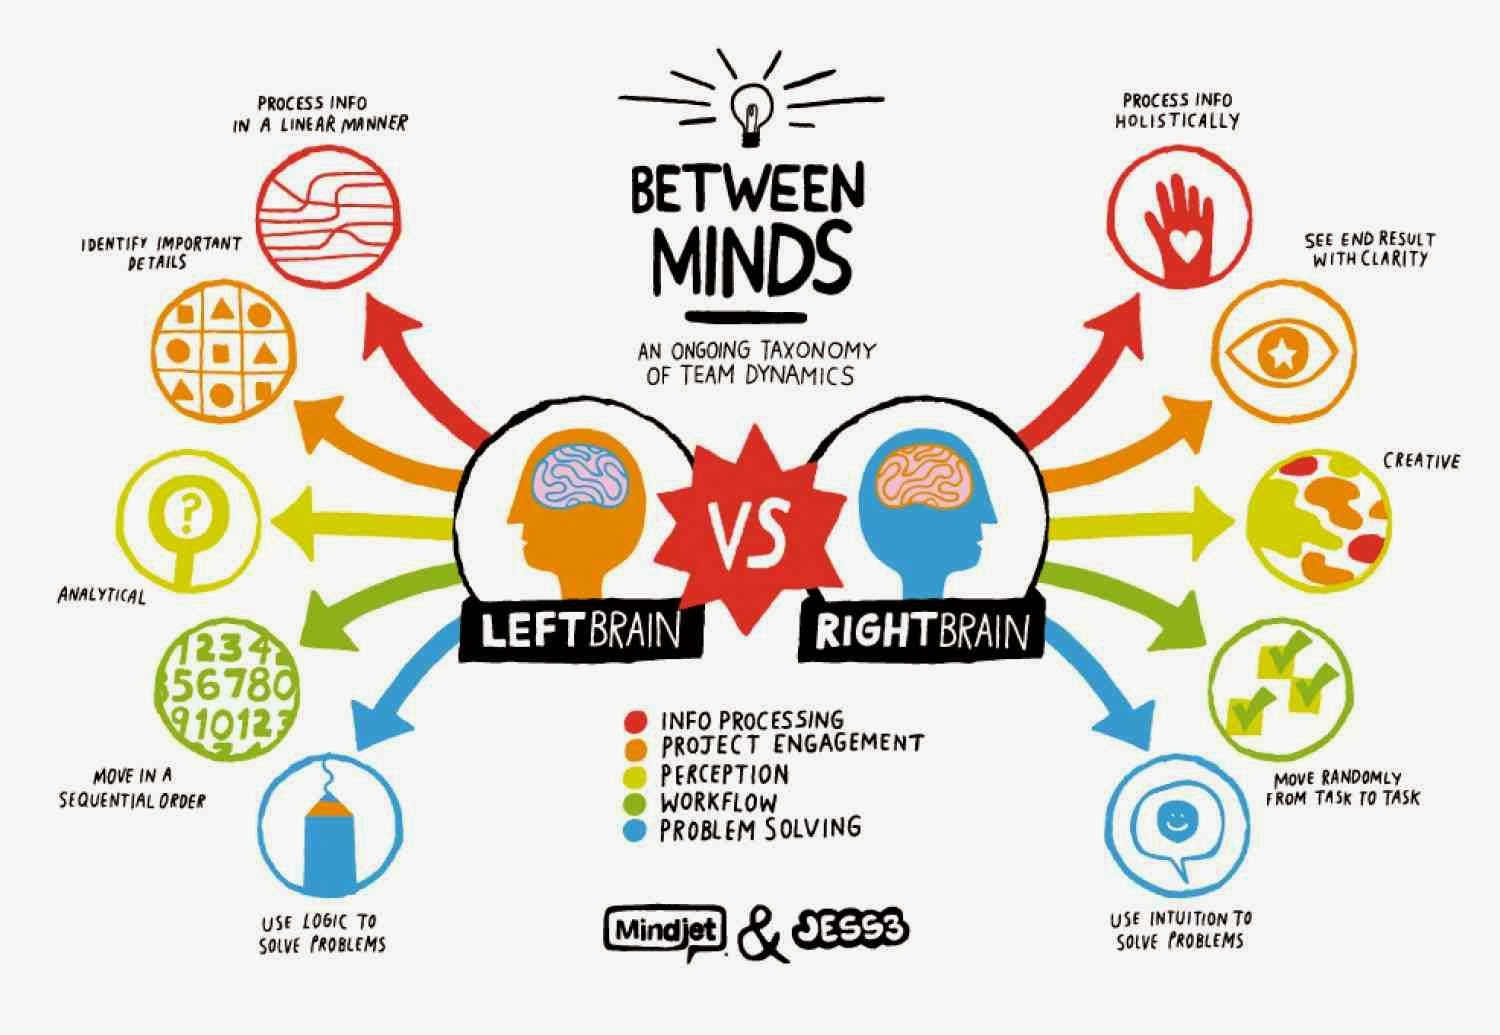 Left Brain vs. Right Brain: What Does This Mean for Me?